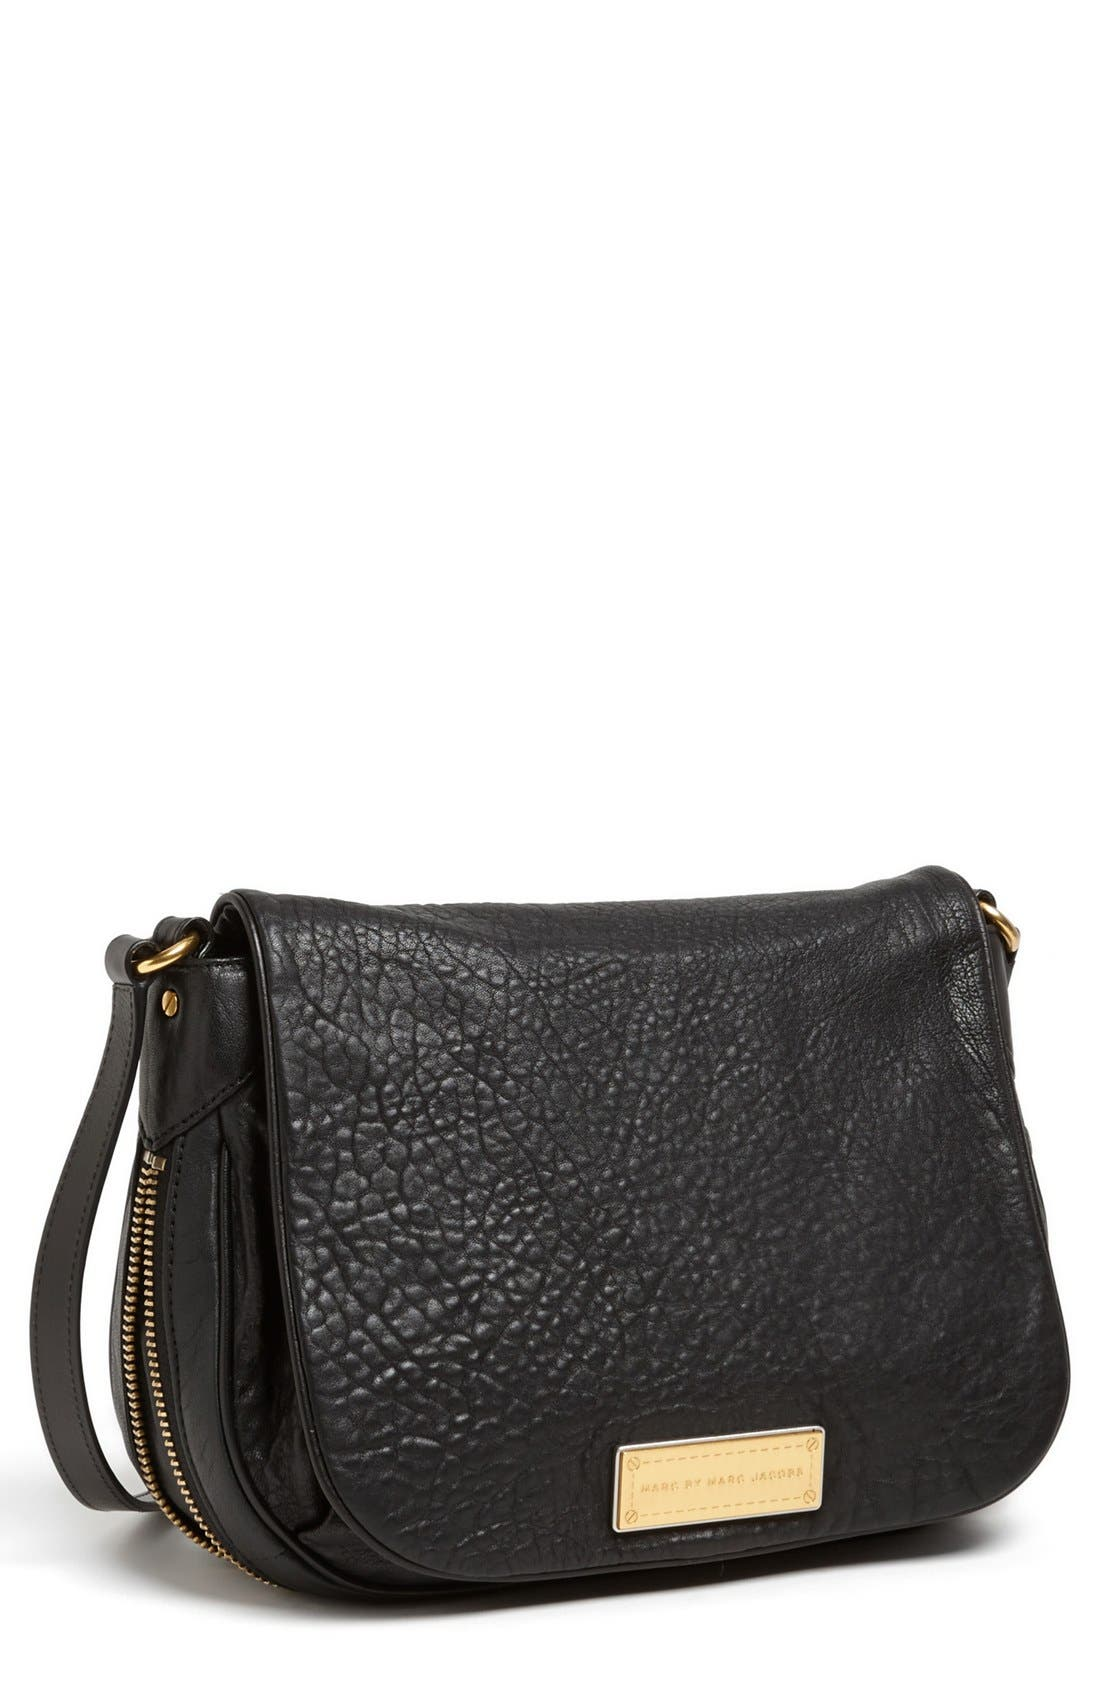 Alternate Image 1 Selected - MARC BY MARC JACOBS 'Washed Up - Nash' Crossbody Bag